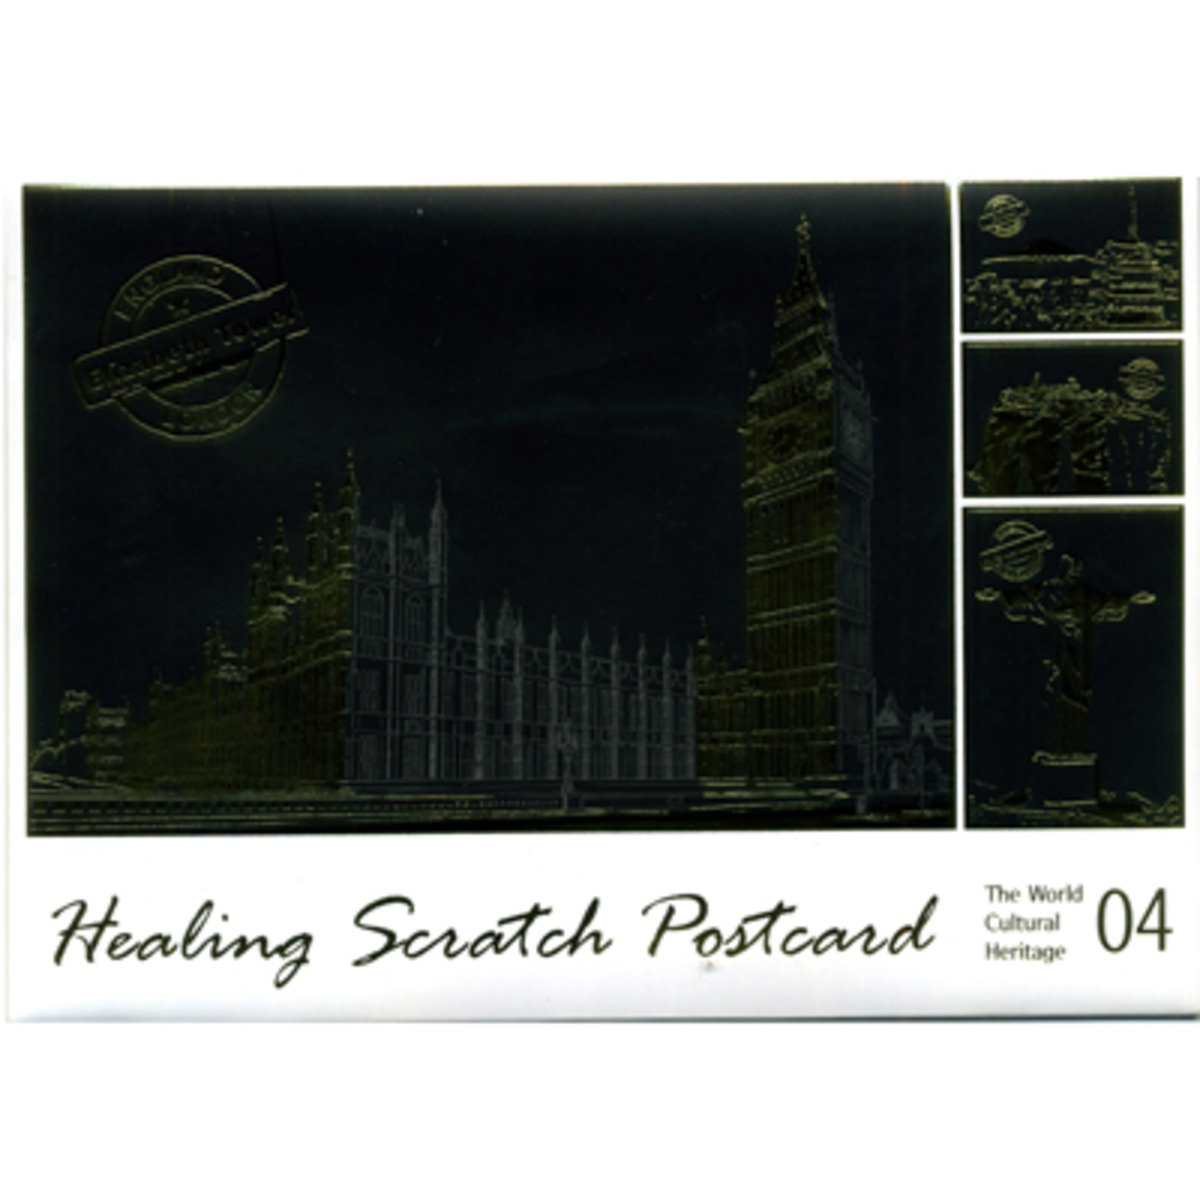 HEALING SCRATCH POSTCARD #4 THE WORLD CULTURAL HERITAGE